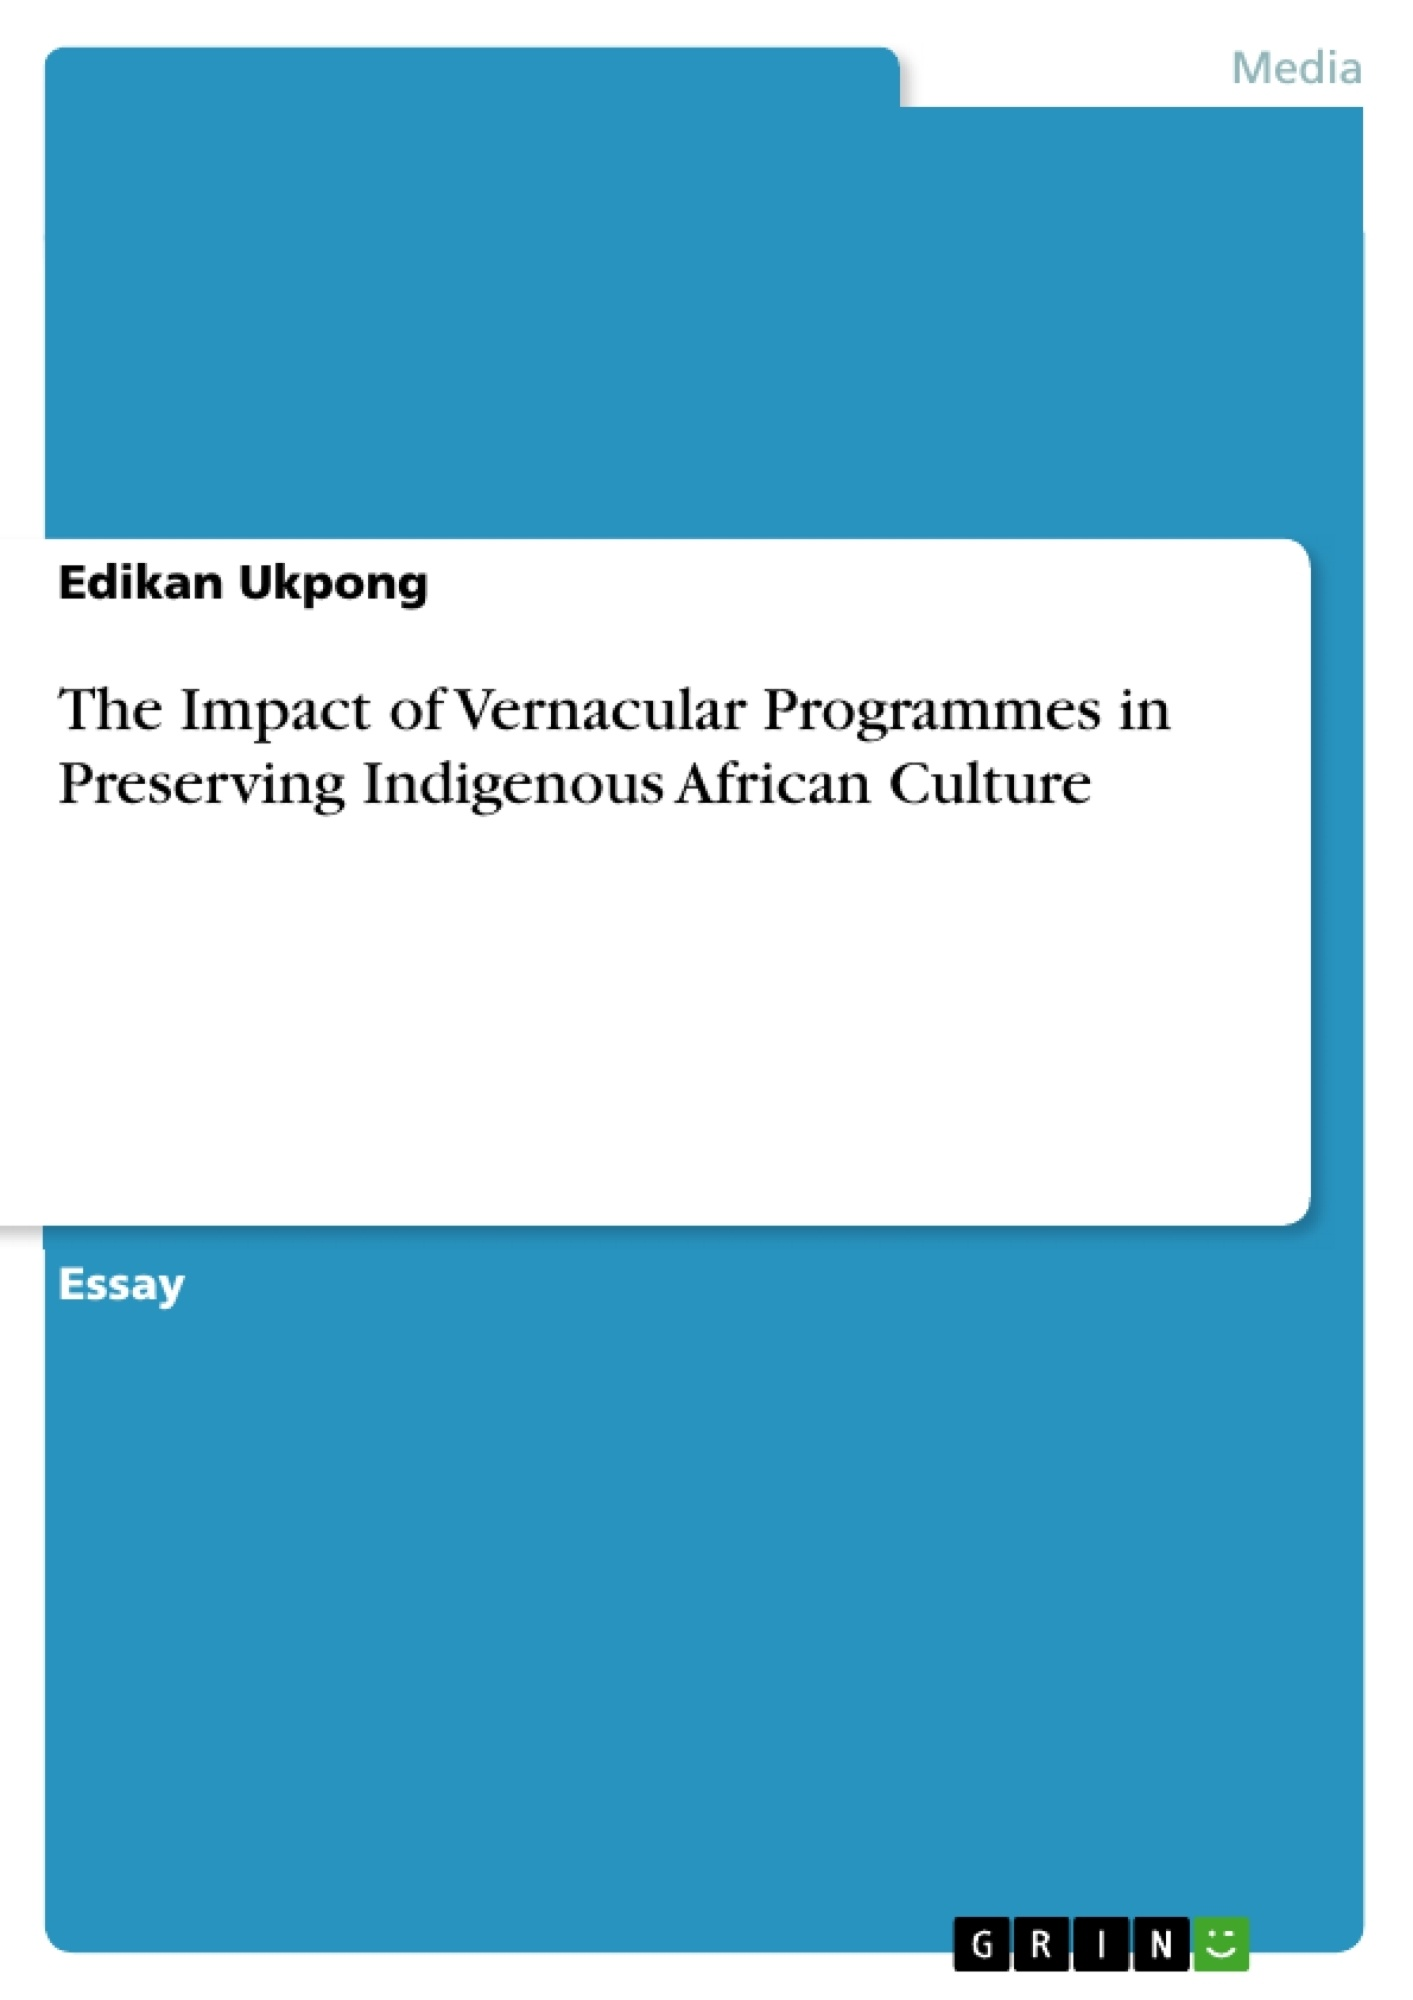 Title: The Impact of Vernacular Programmes in Preserving Indigenous African Culture